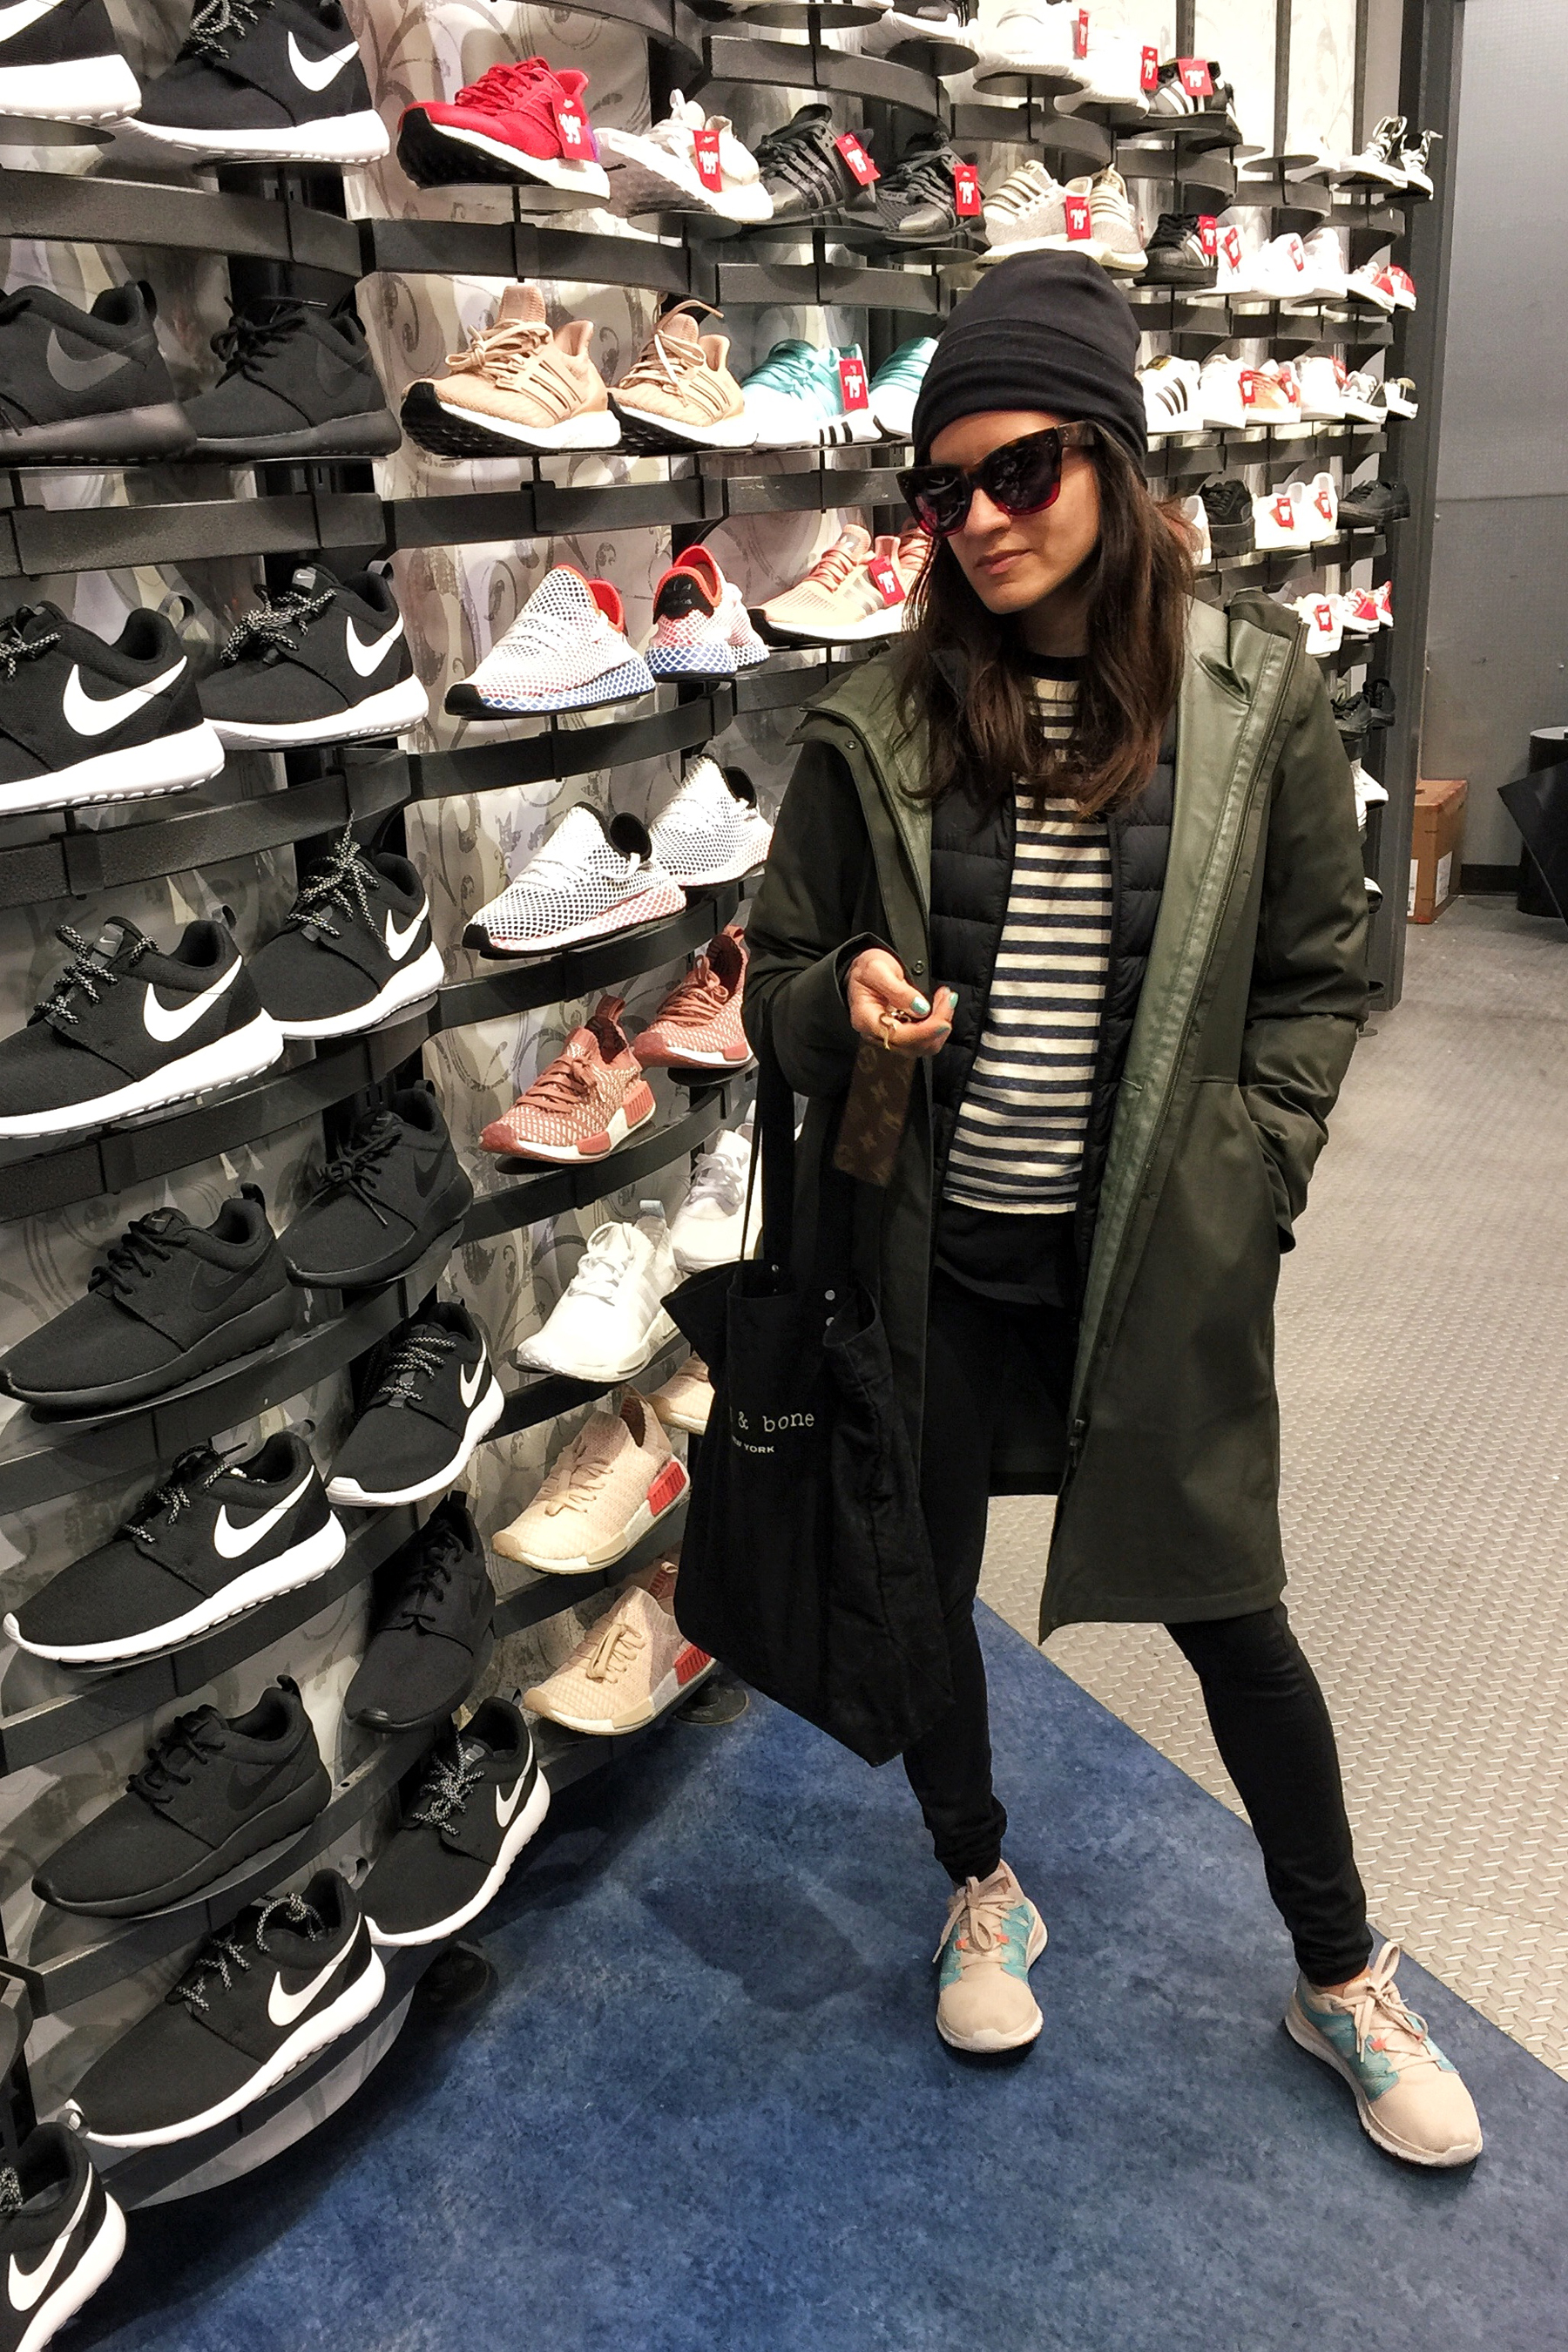 woahstyle.com - 365 outfits - day 5 - adidas deerupt sneakers spring 2018 - nathalie martin.jpg